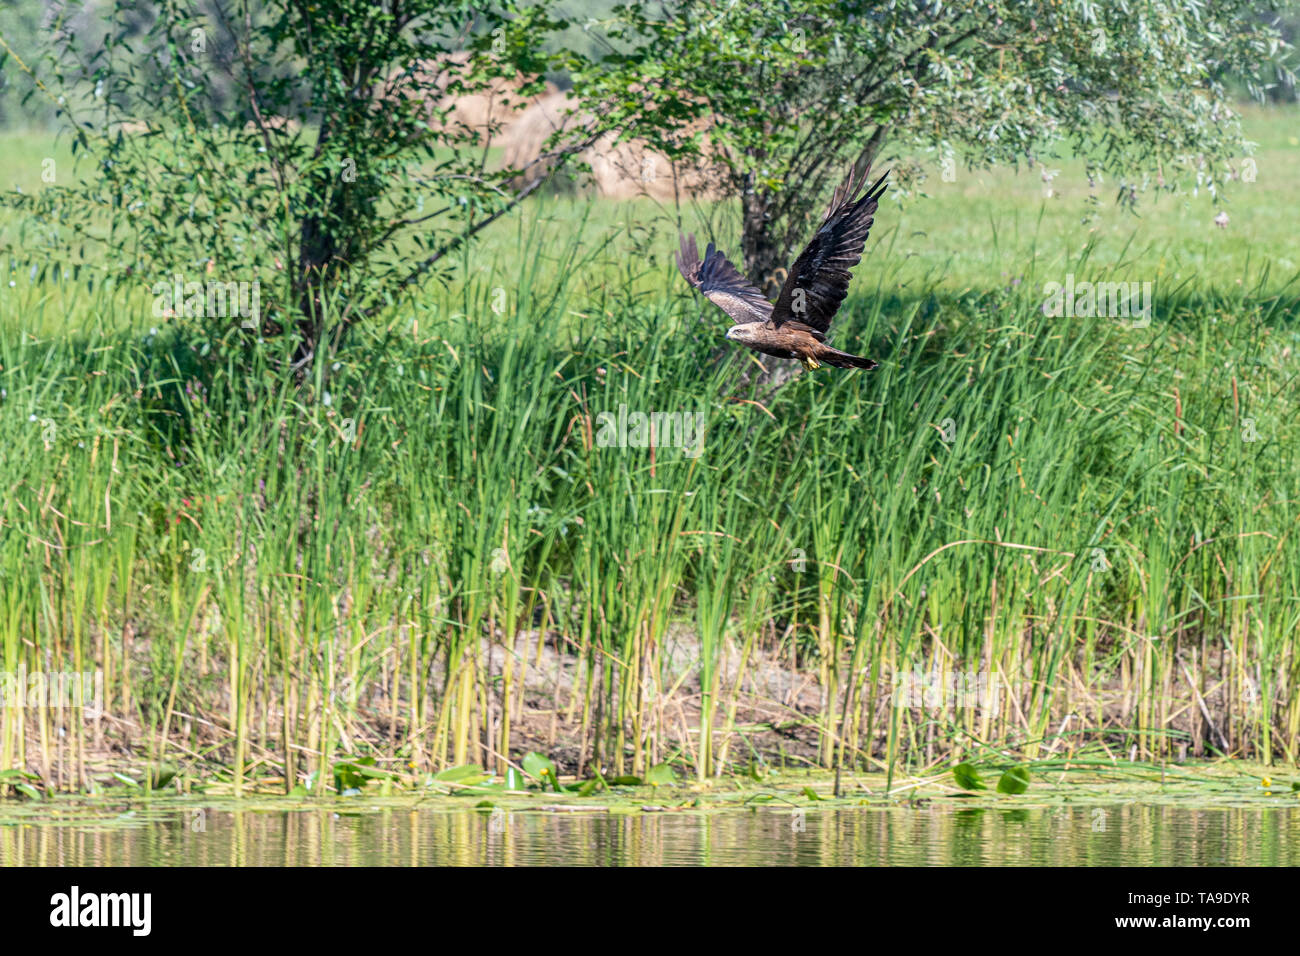 Flying on the background of trees the Hawk the Buzzard (buteo buteo). Hawk looking for prey. - Stock Image